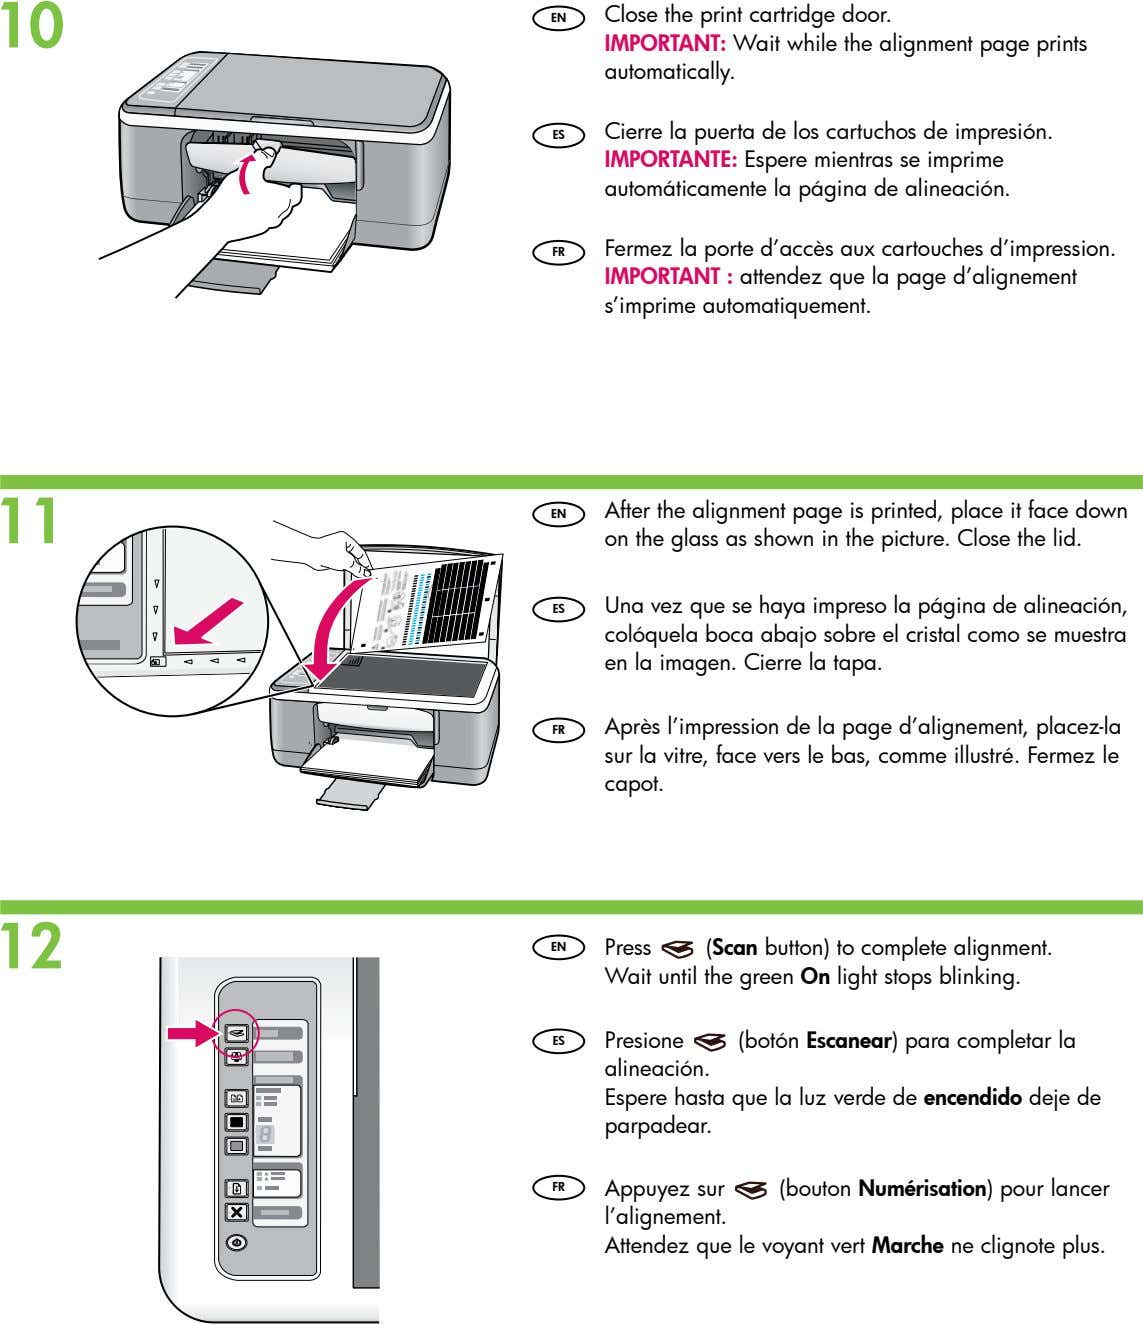 10 EN Close the print cartridge door. IMPORTANT: Wait while the alignment page prints automatically.